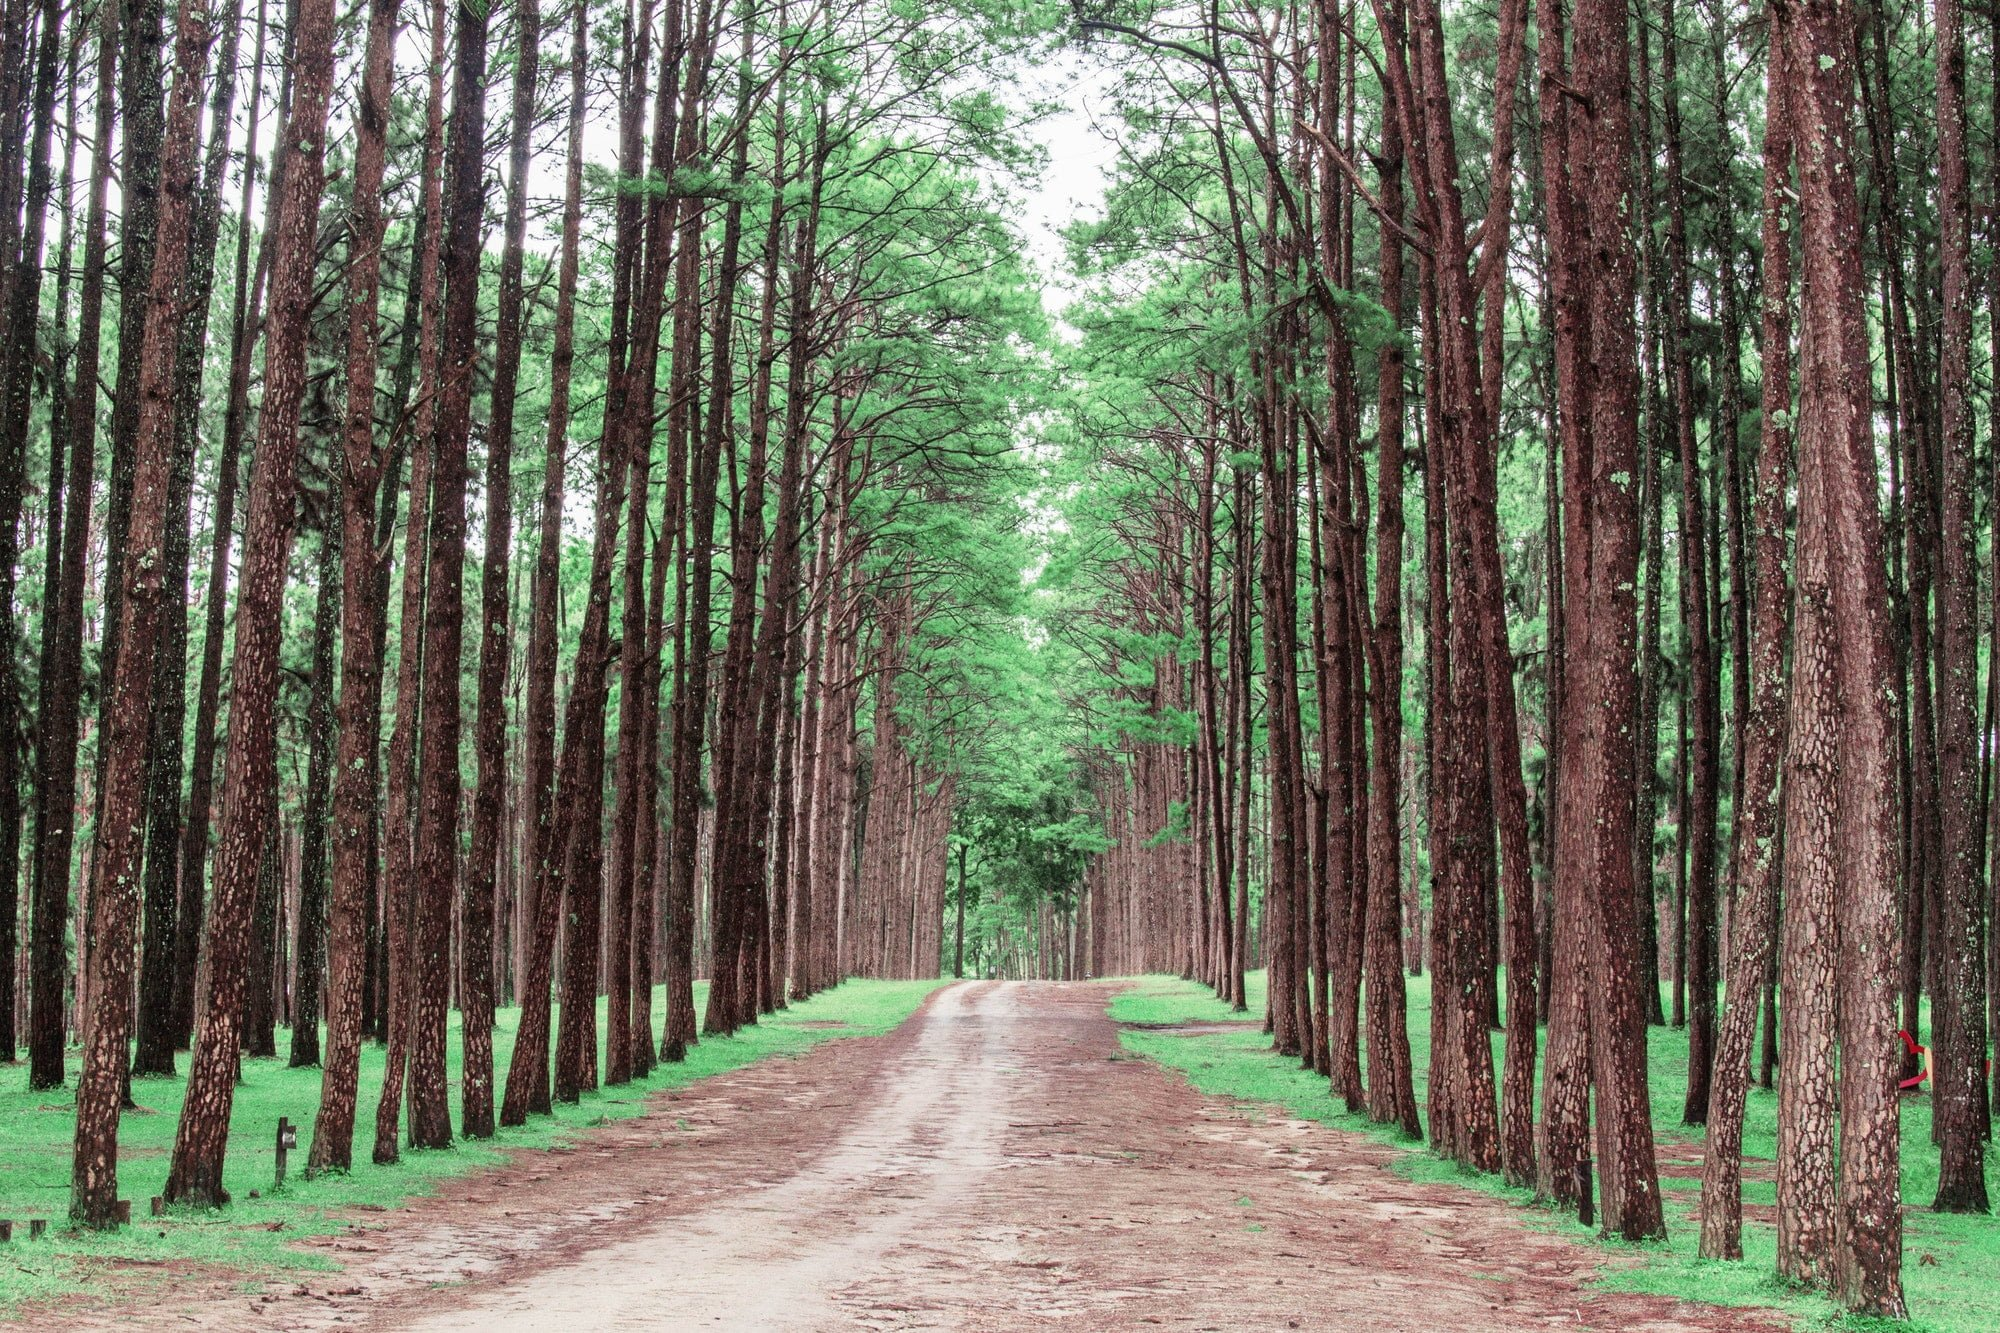 Pine groves in the jungle